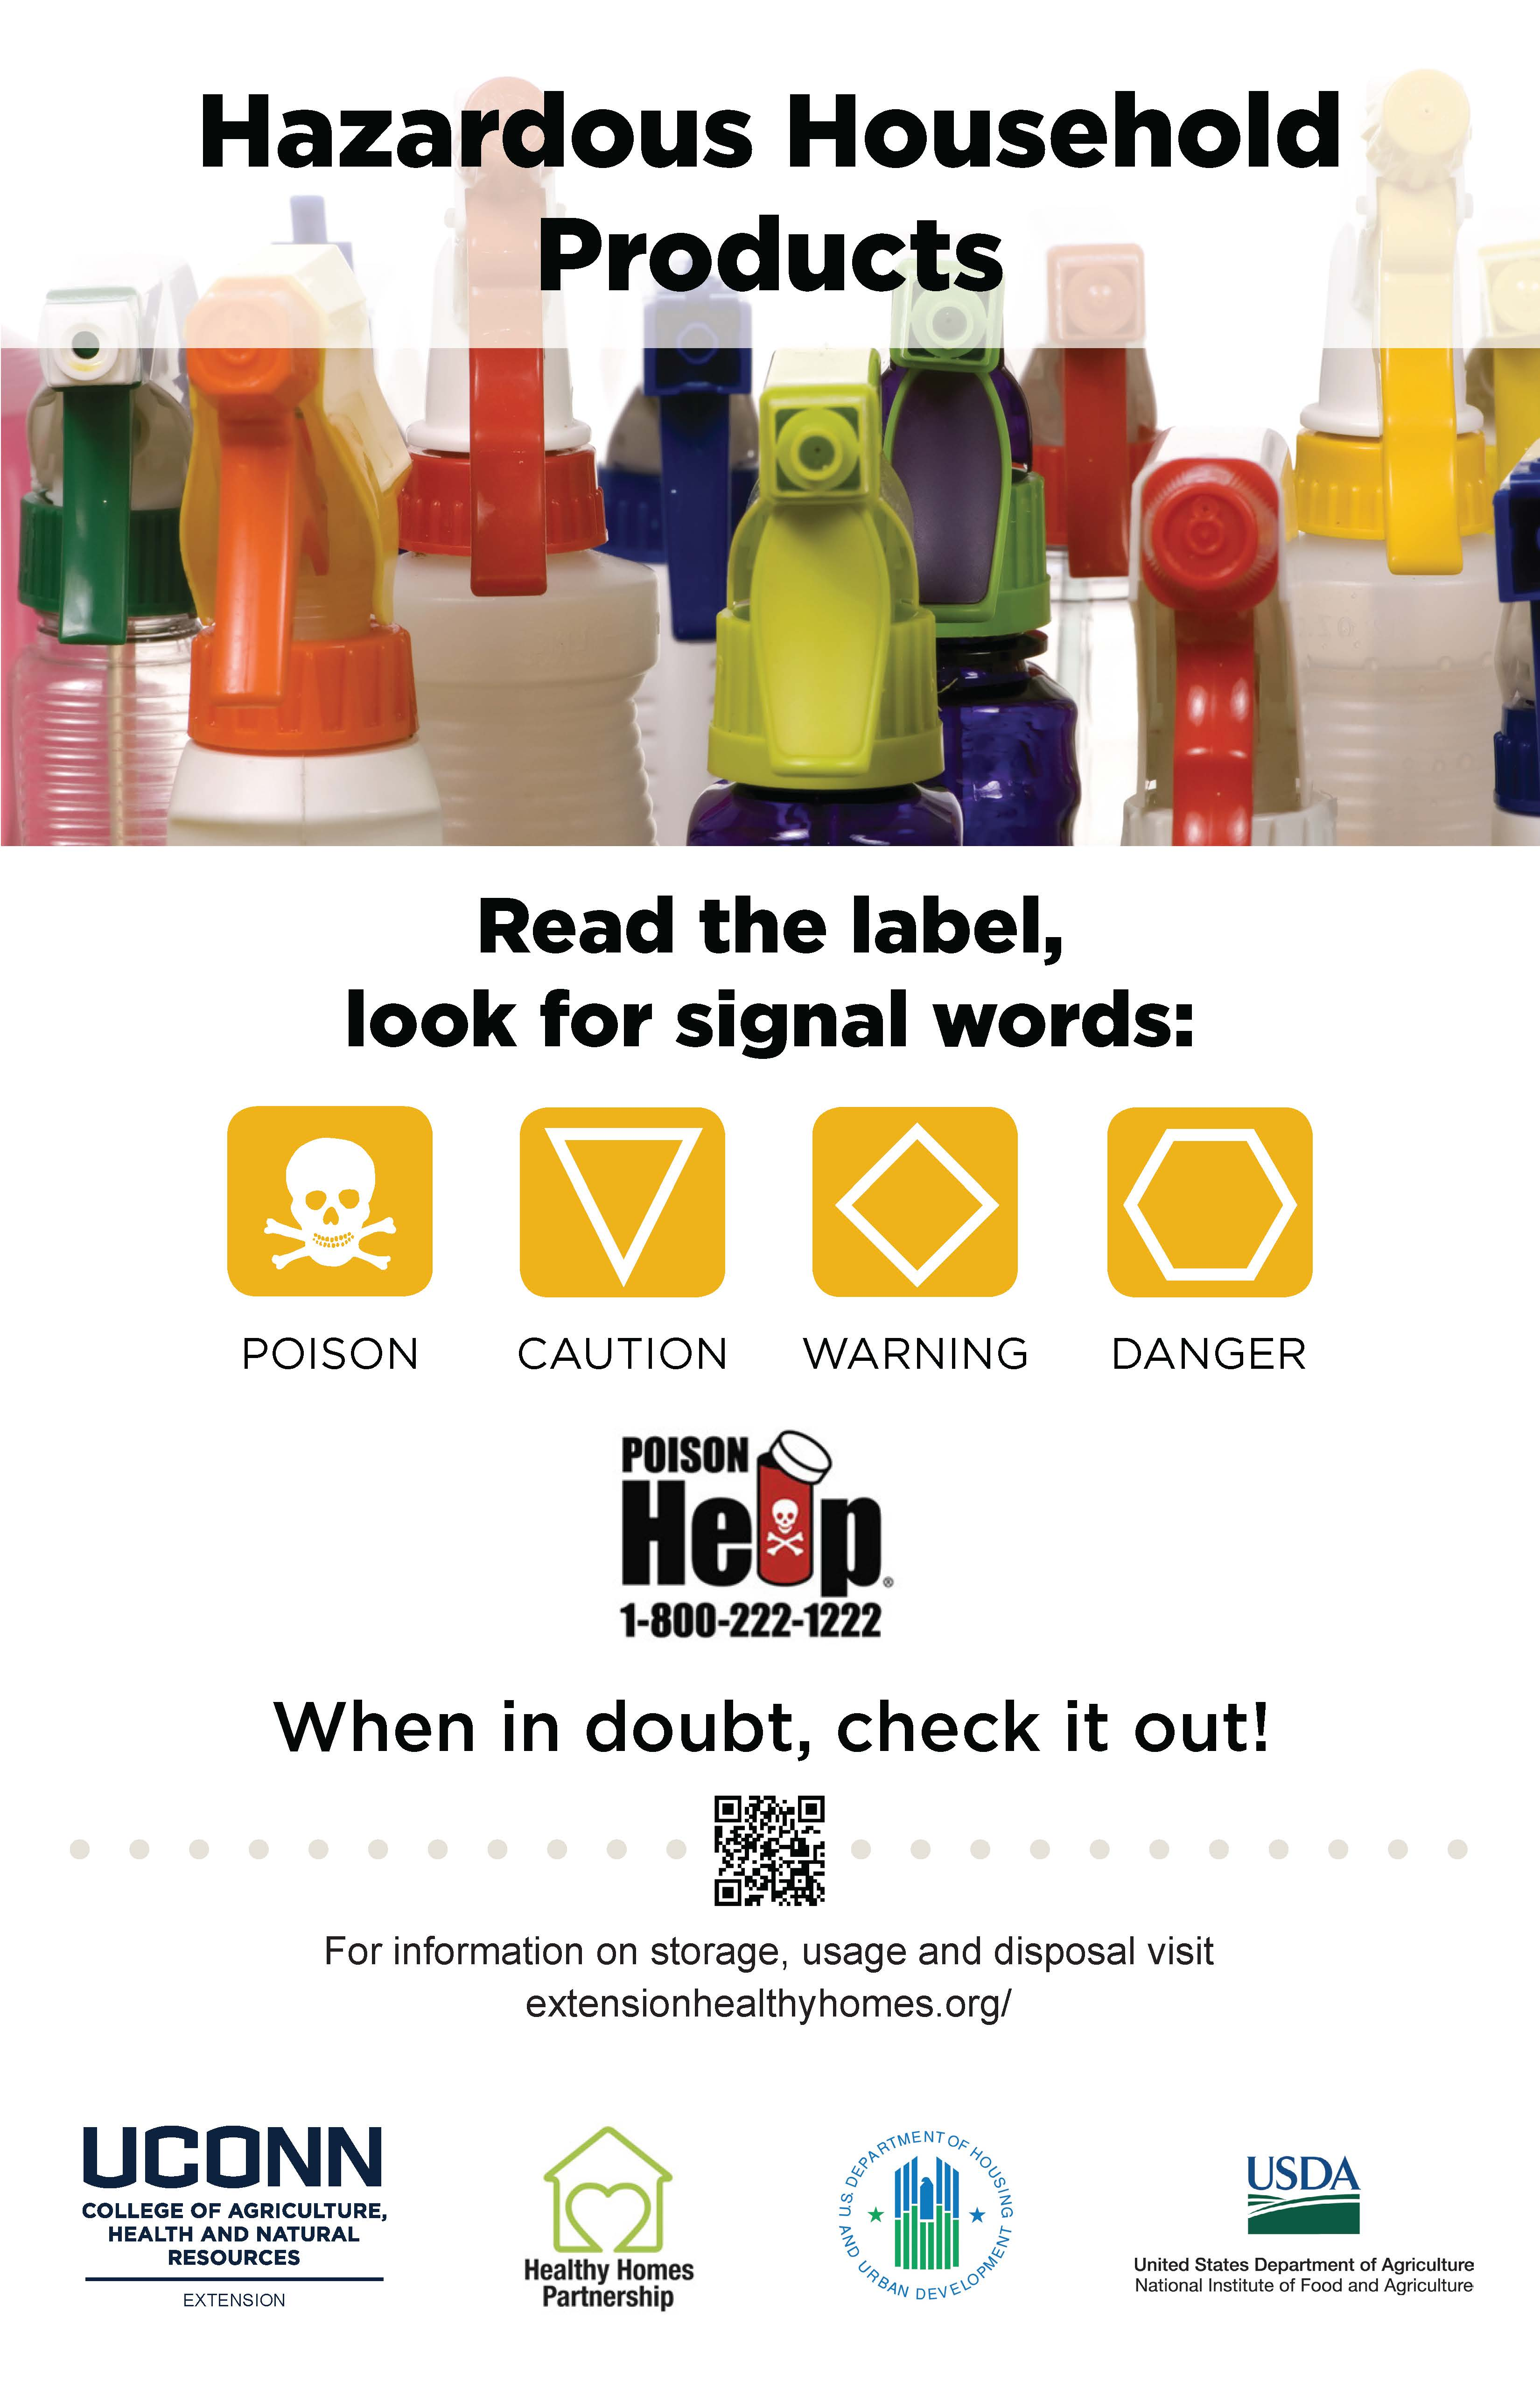 household hazardous extension healthy uconn homes health september posted